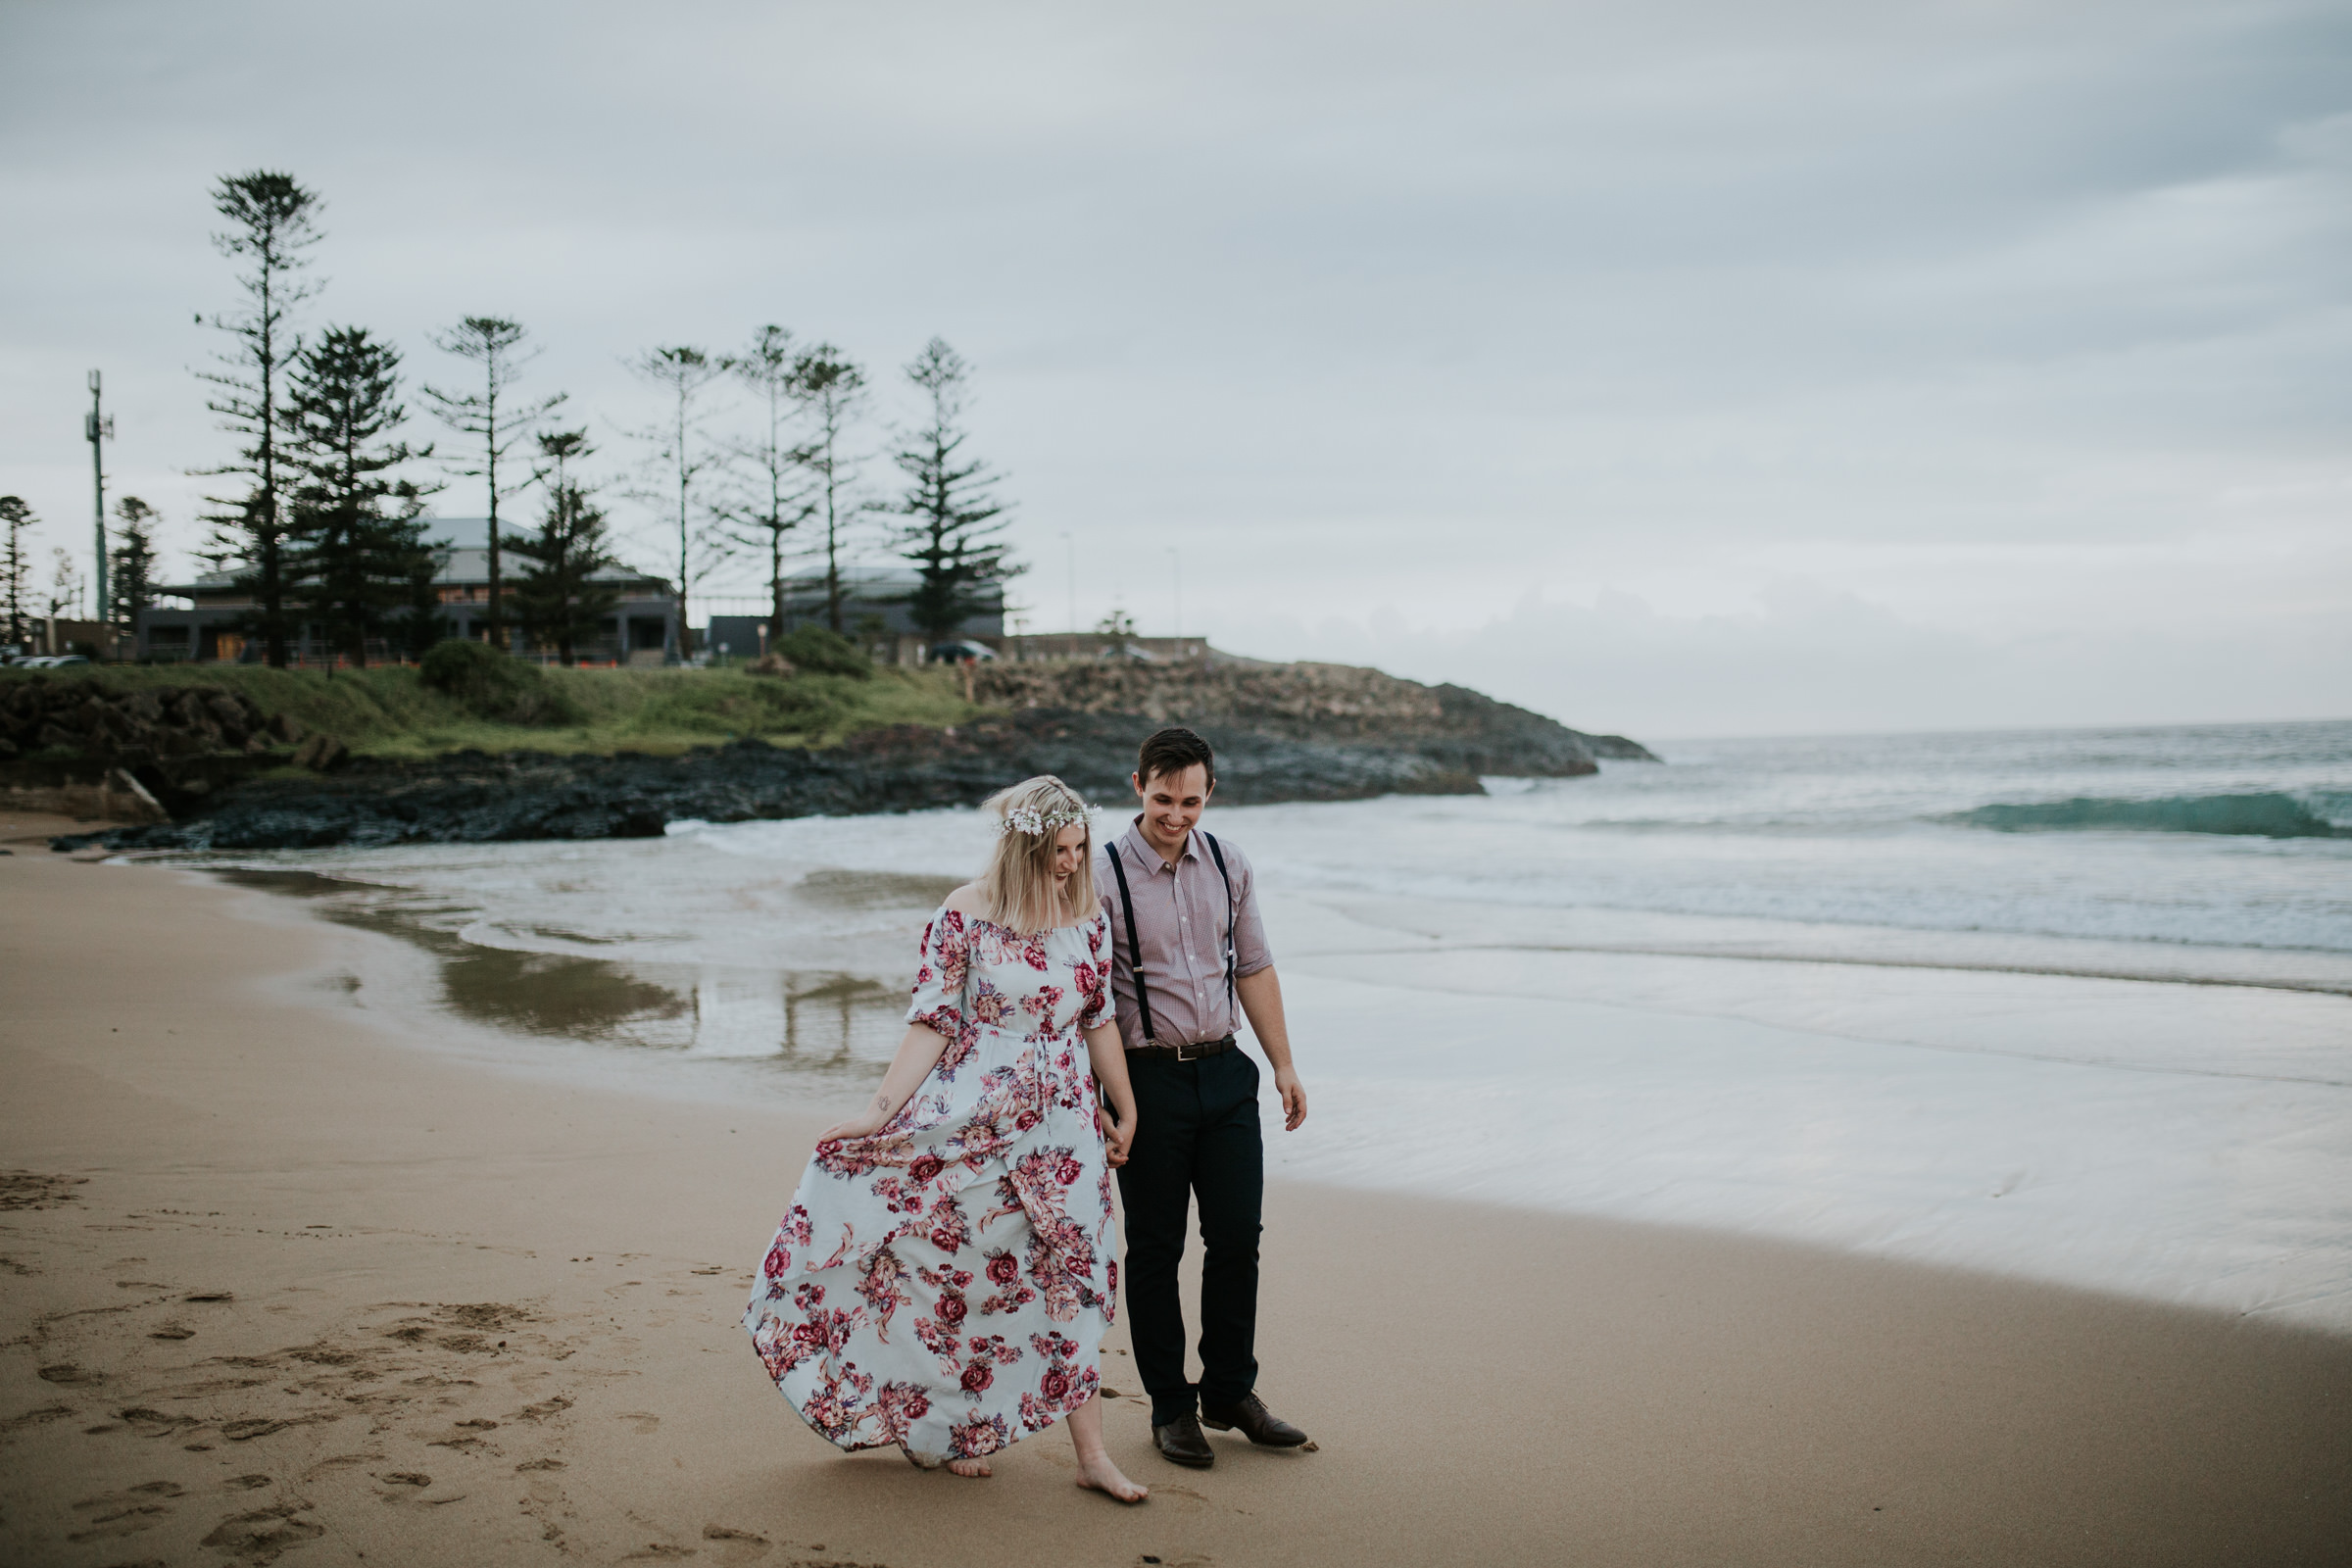 Ebony+Aj+Engagement+Kiama+Beach-10.jpg